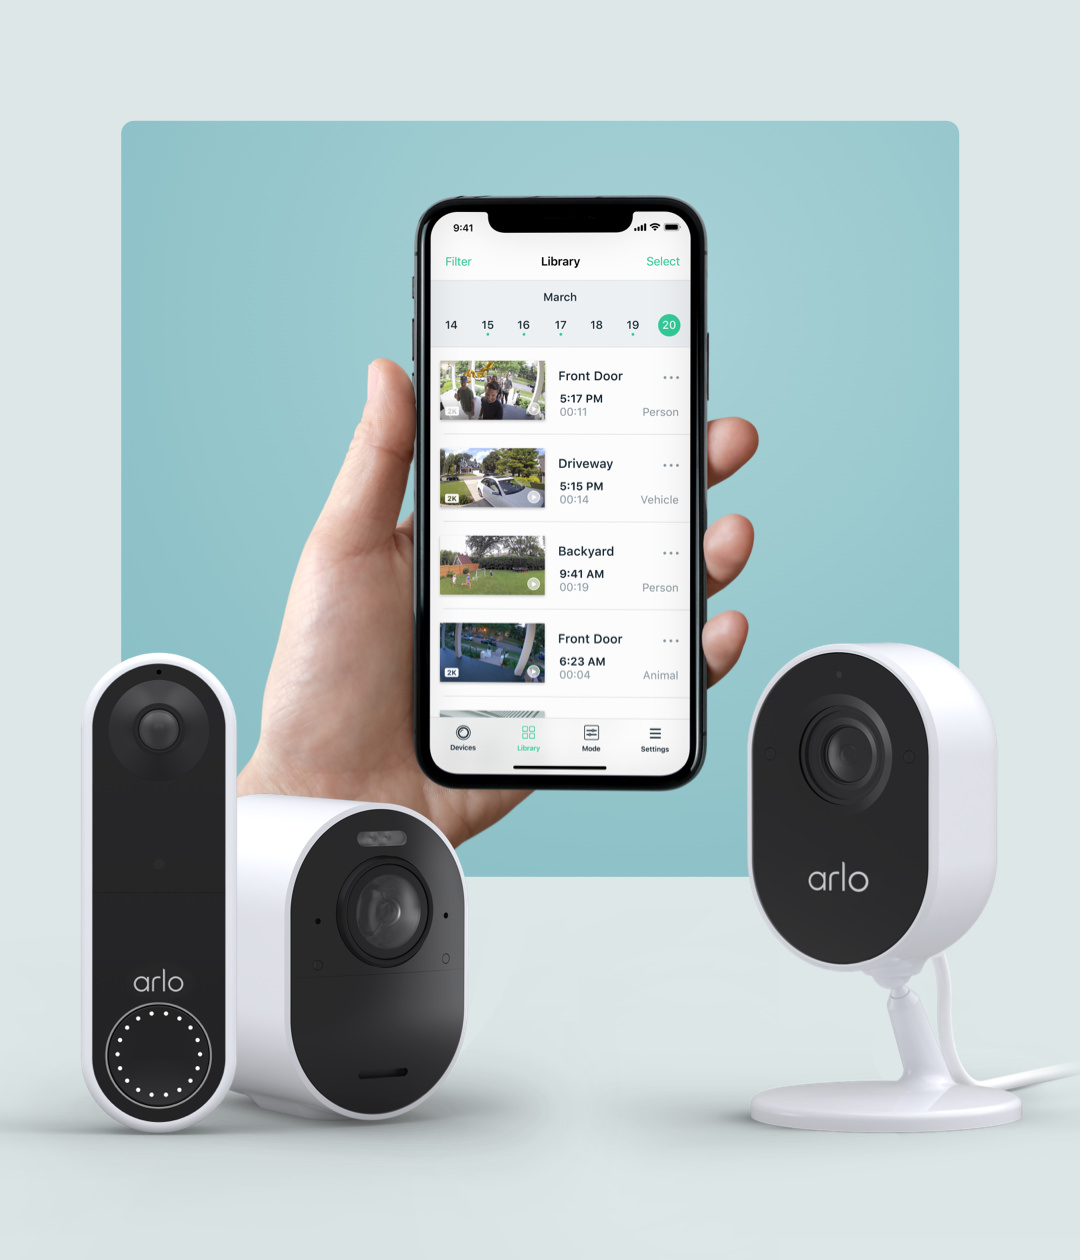 Subscribers save 10% sitewide on Arlo.com